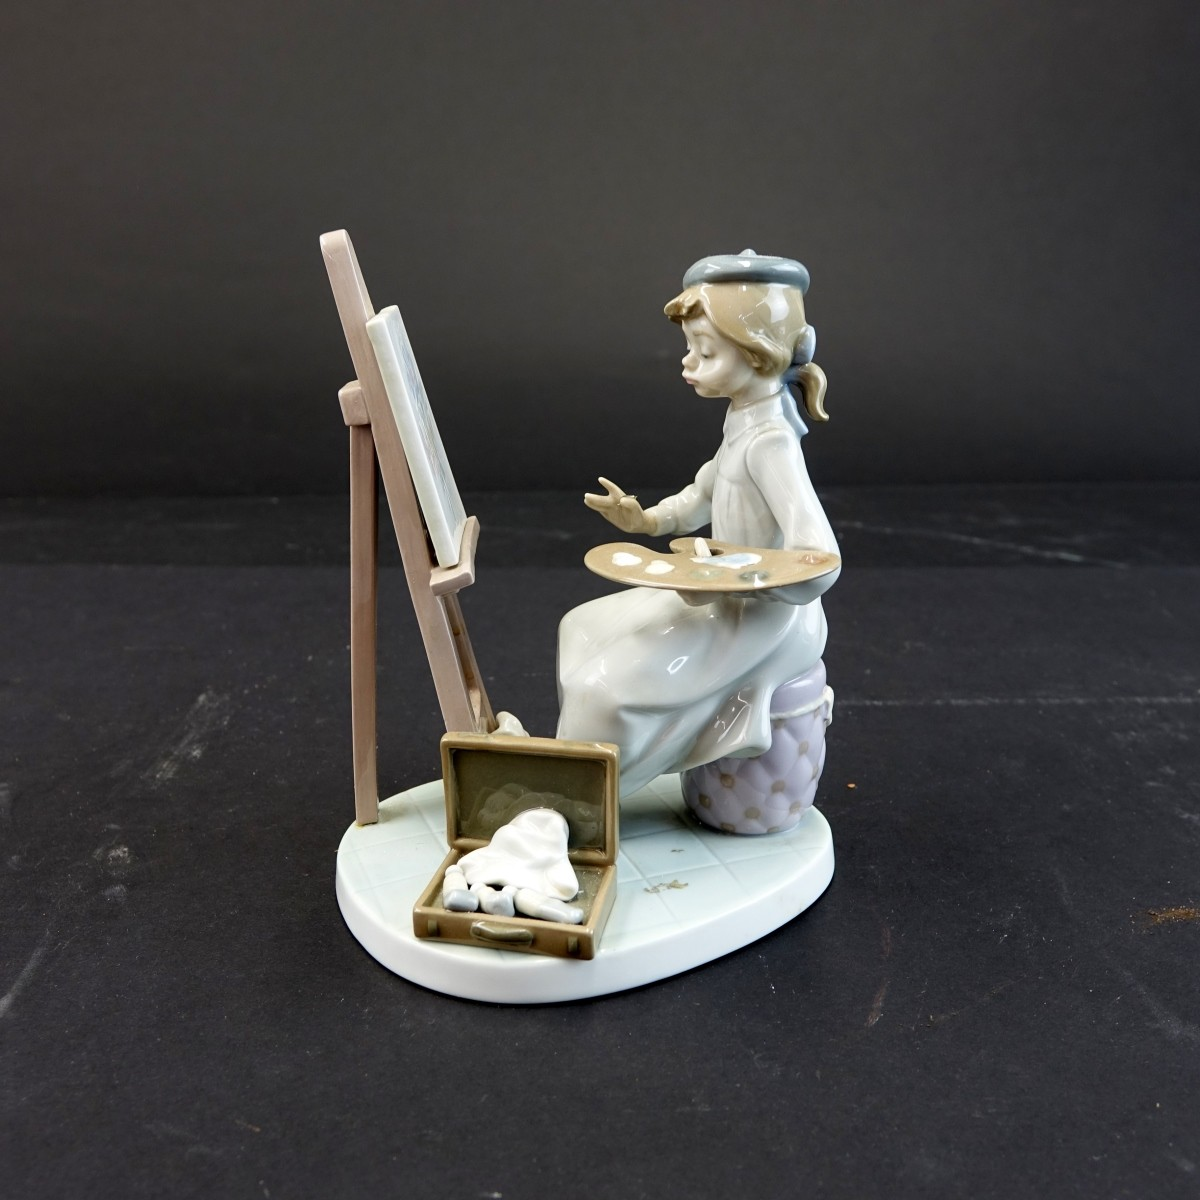 Lladro Still Life Painter Porcelain Figurine